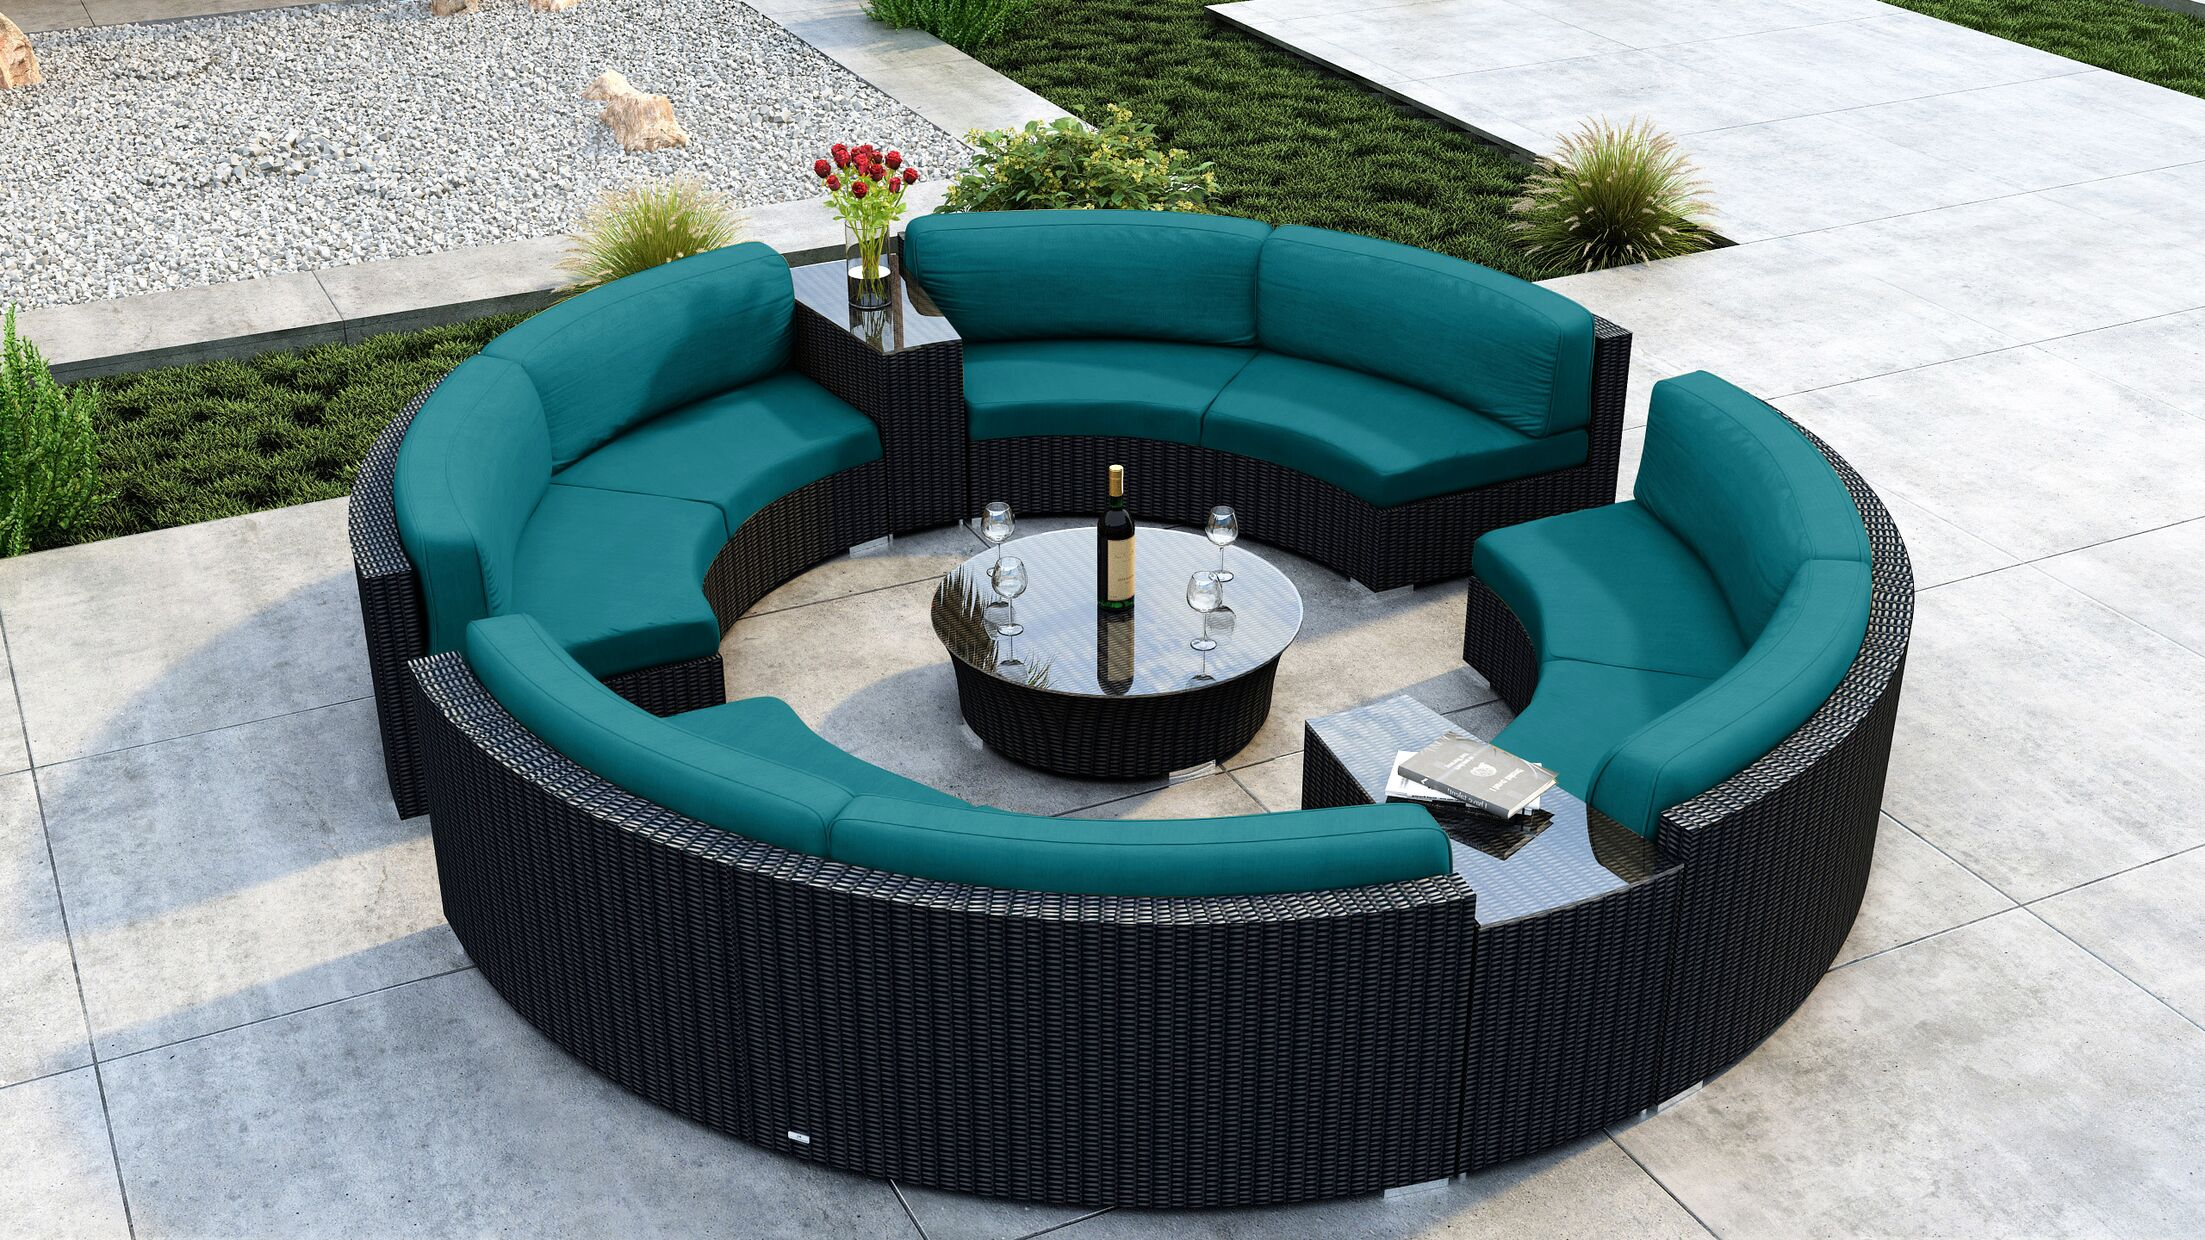 Glendale 7 Piece Sectional Set with Sunbrella Cushion Cushion Color: Spectrum Peacock